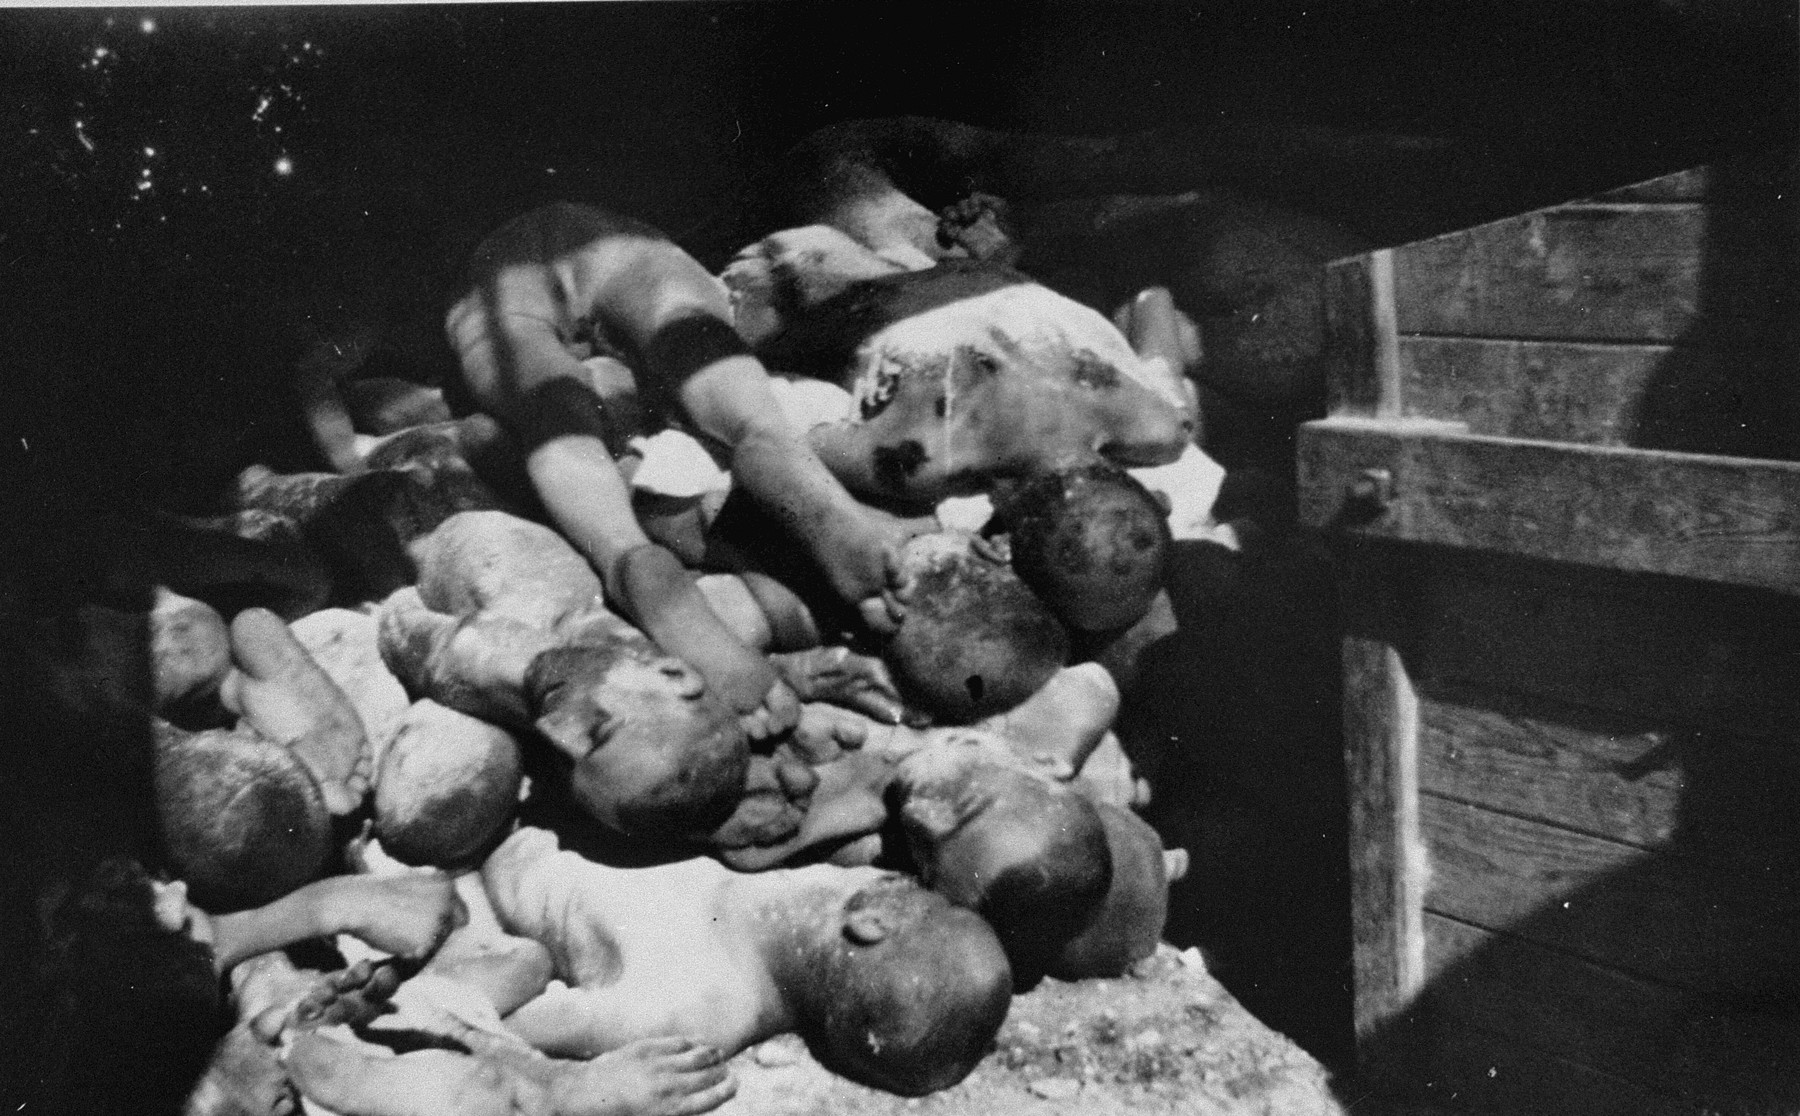 Prisoners' corpses piled in a shed.